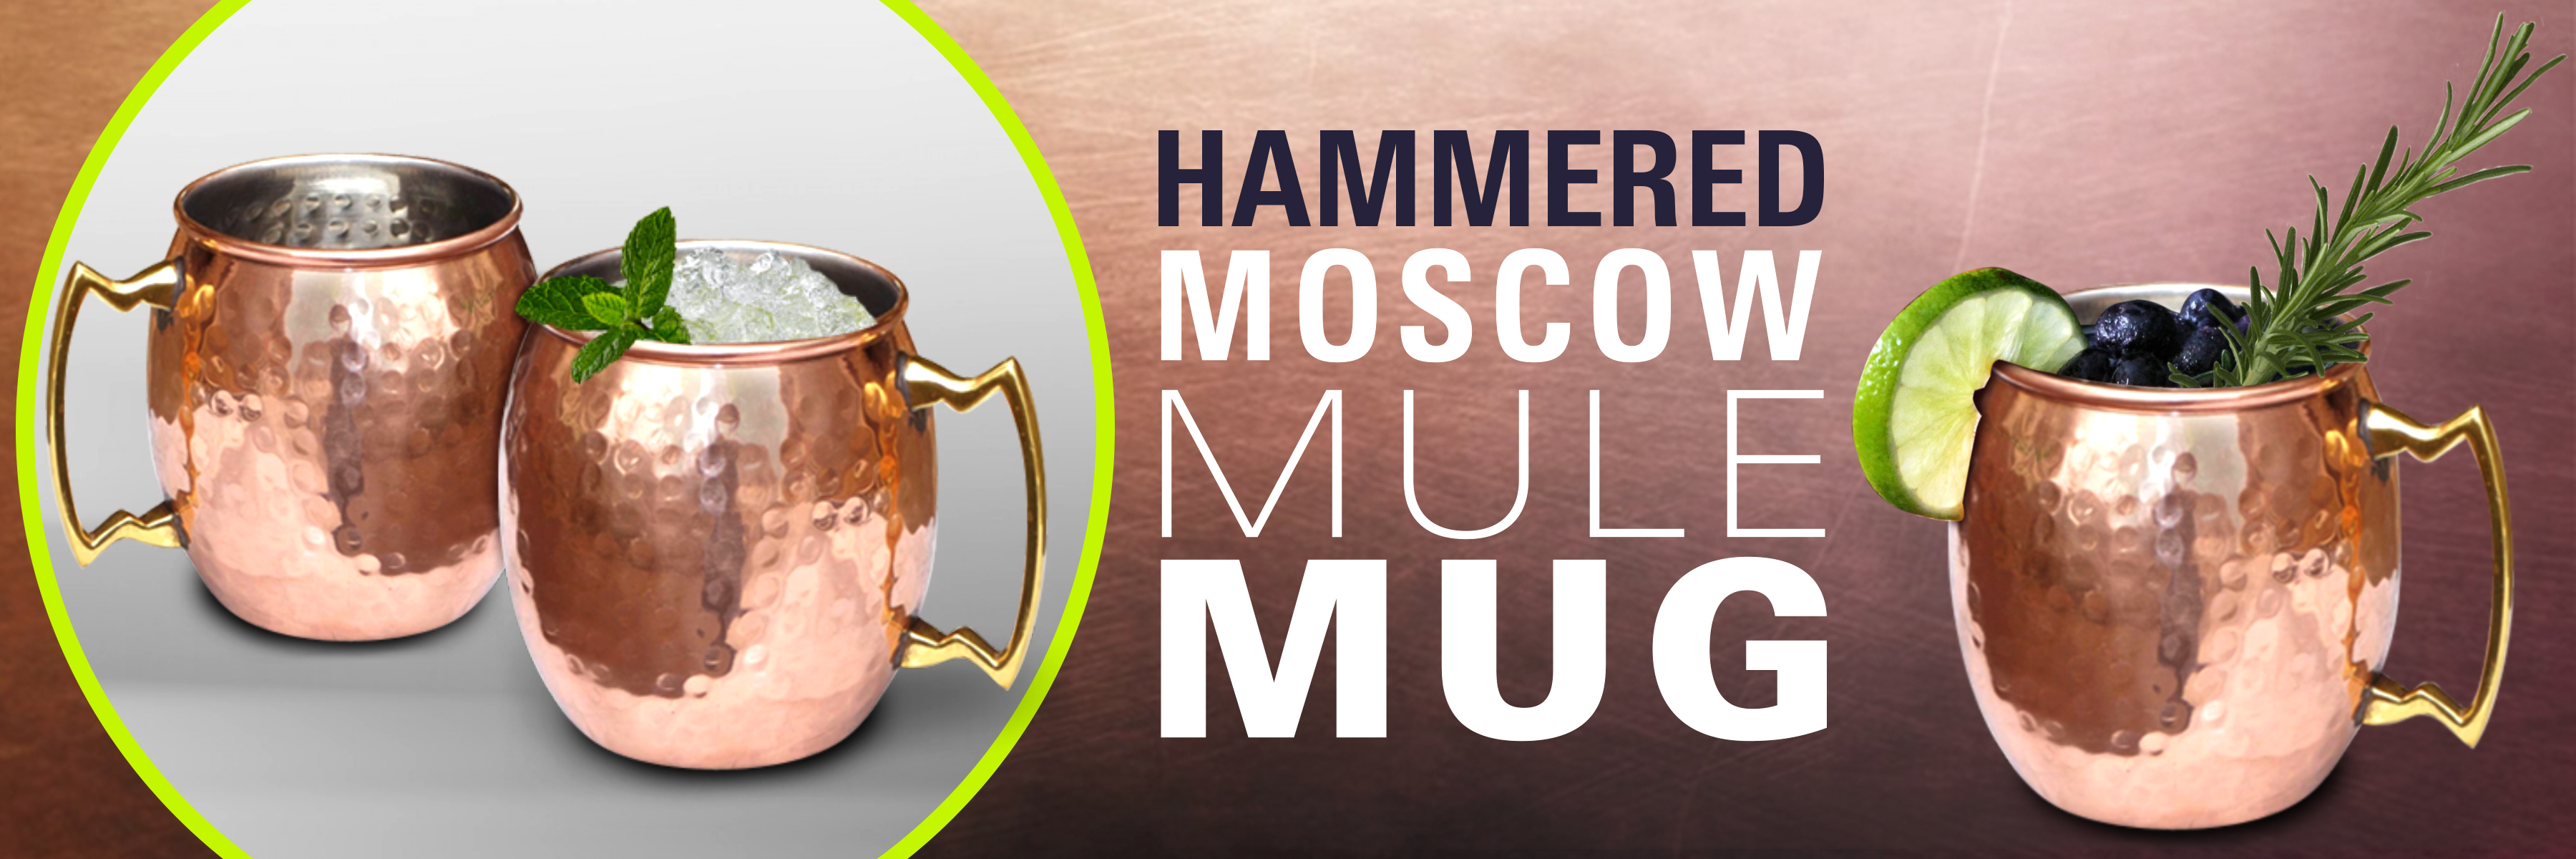 hammered moscow mule